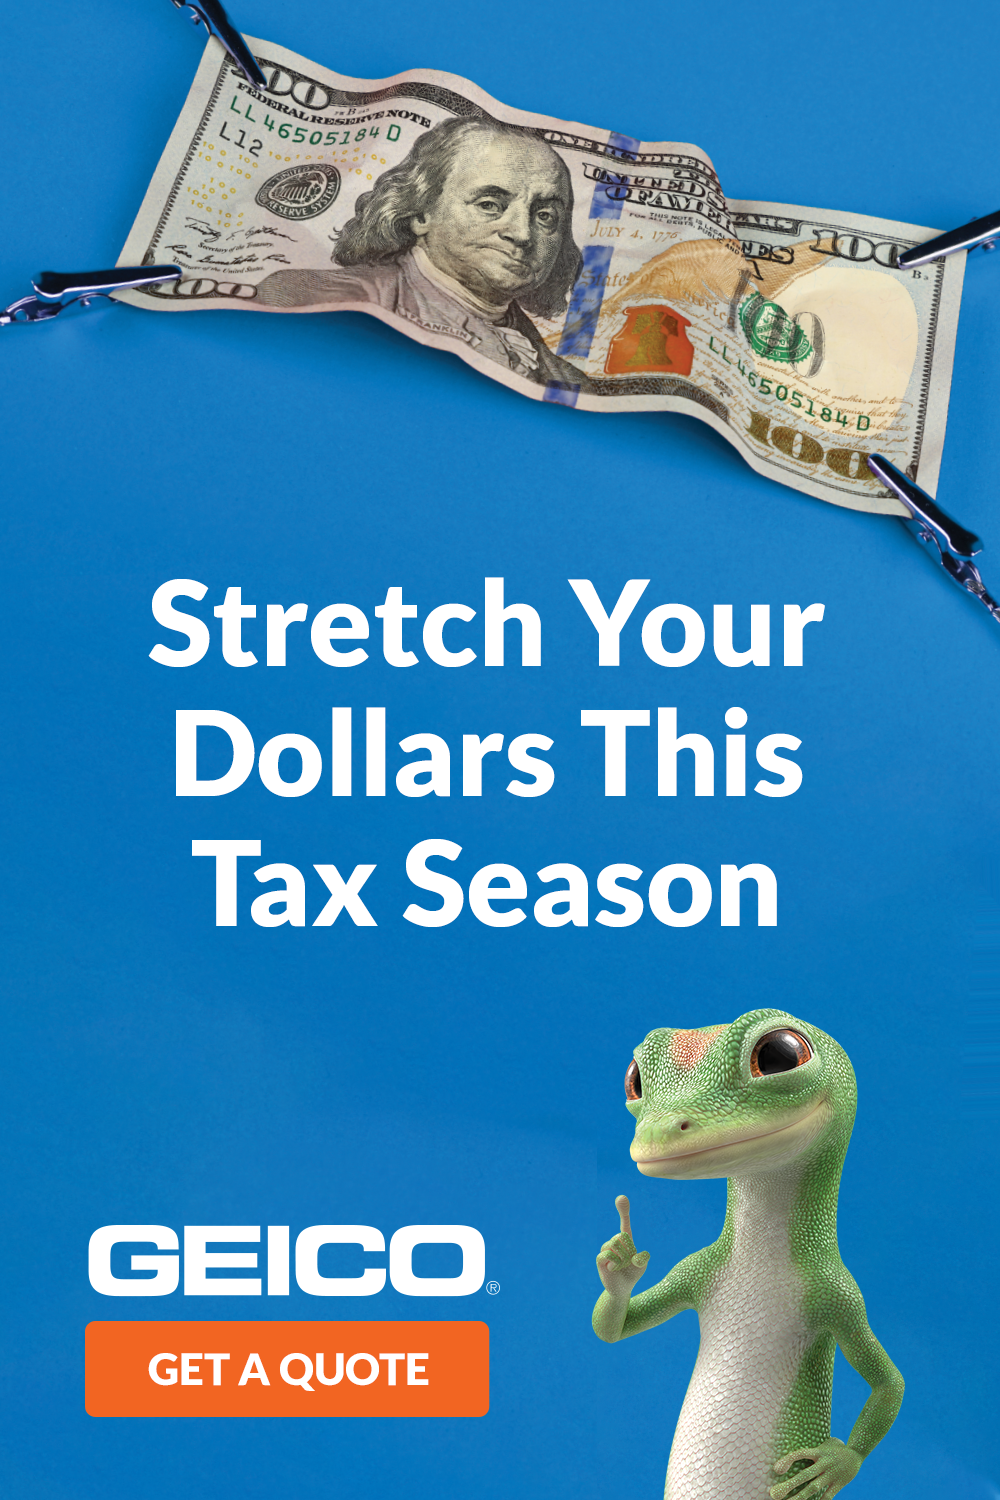 Get a quote with GEICO and see how easy it is to save big